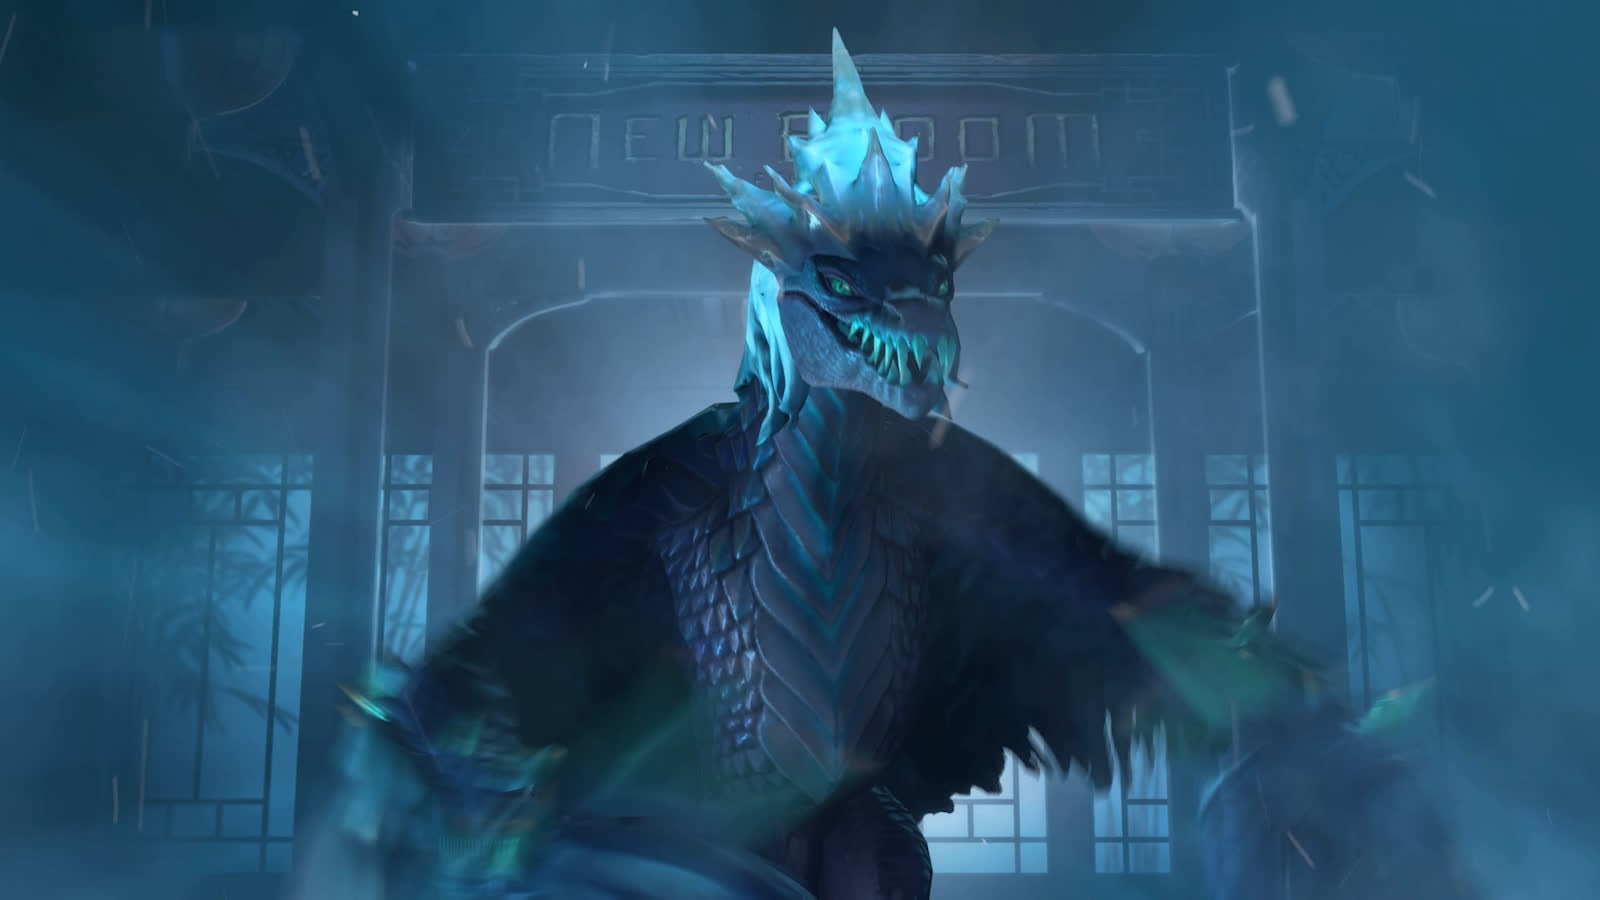 Dota 2 : Winter Wyvern Wallpapers